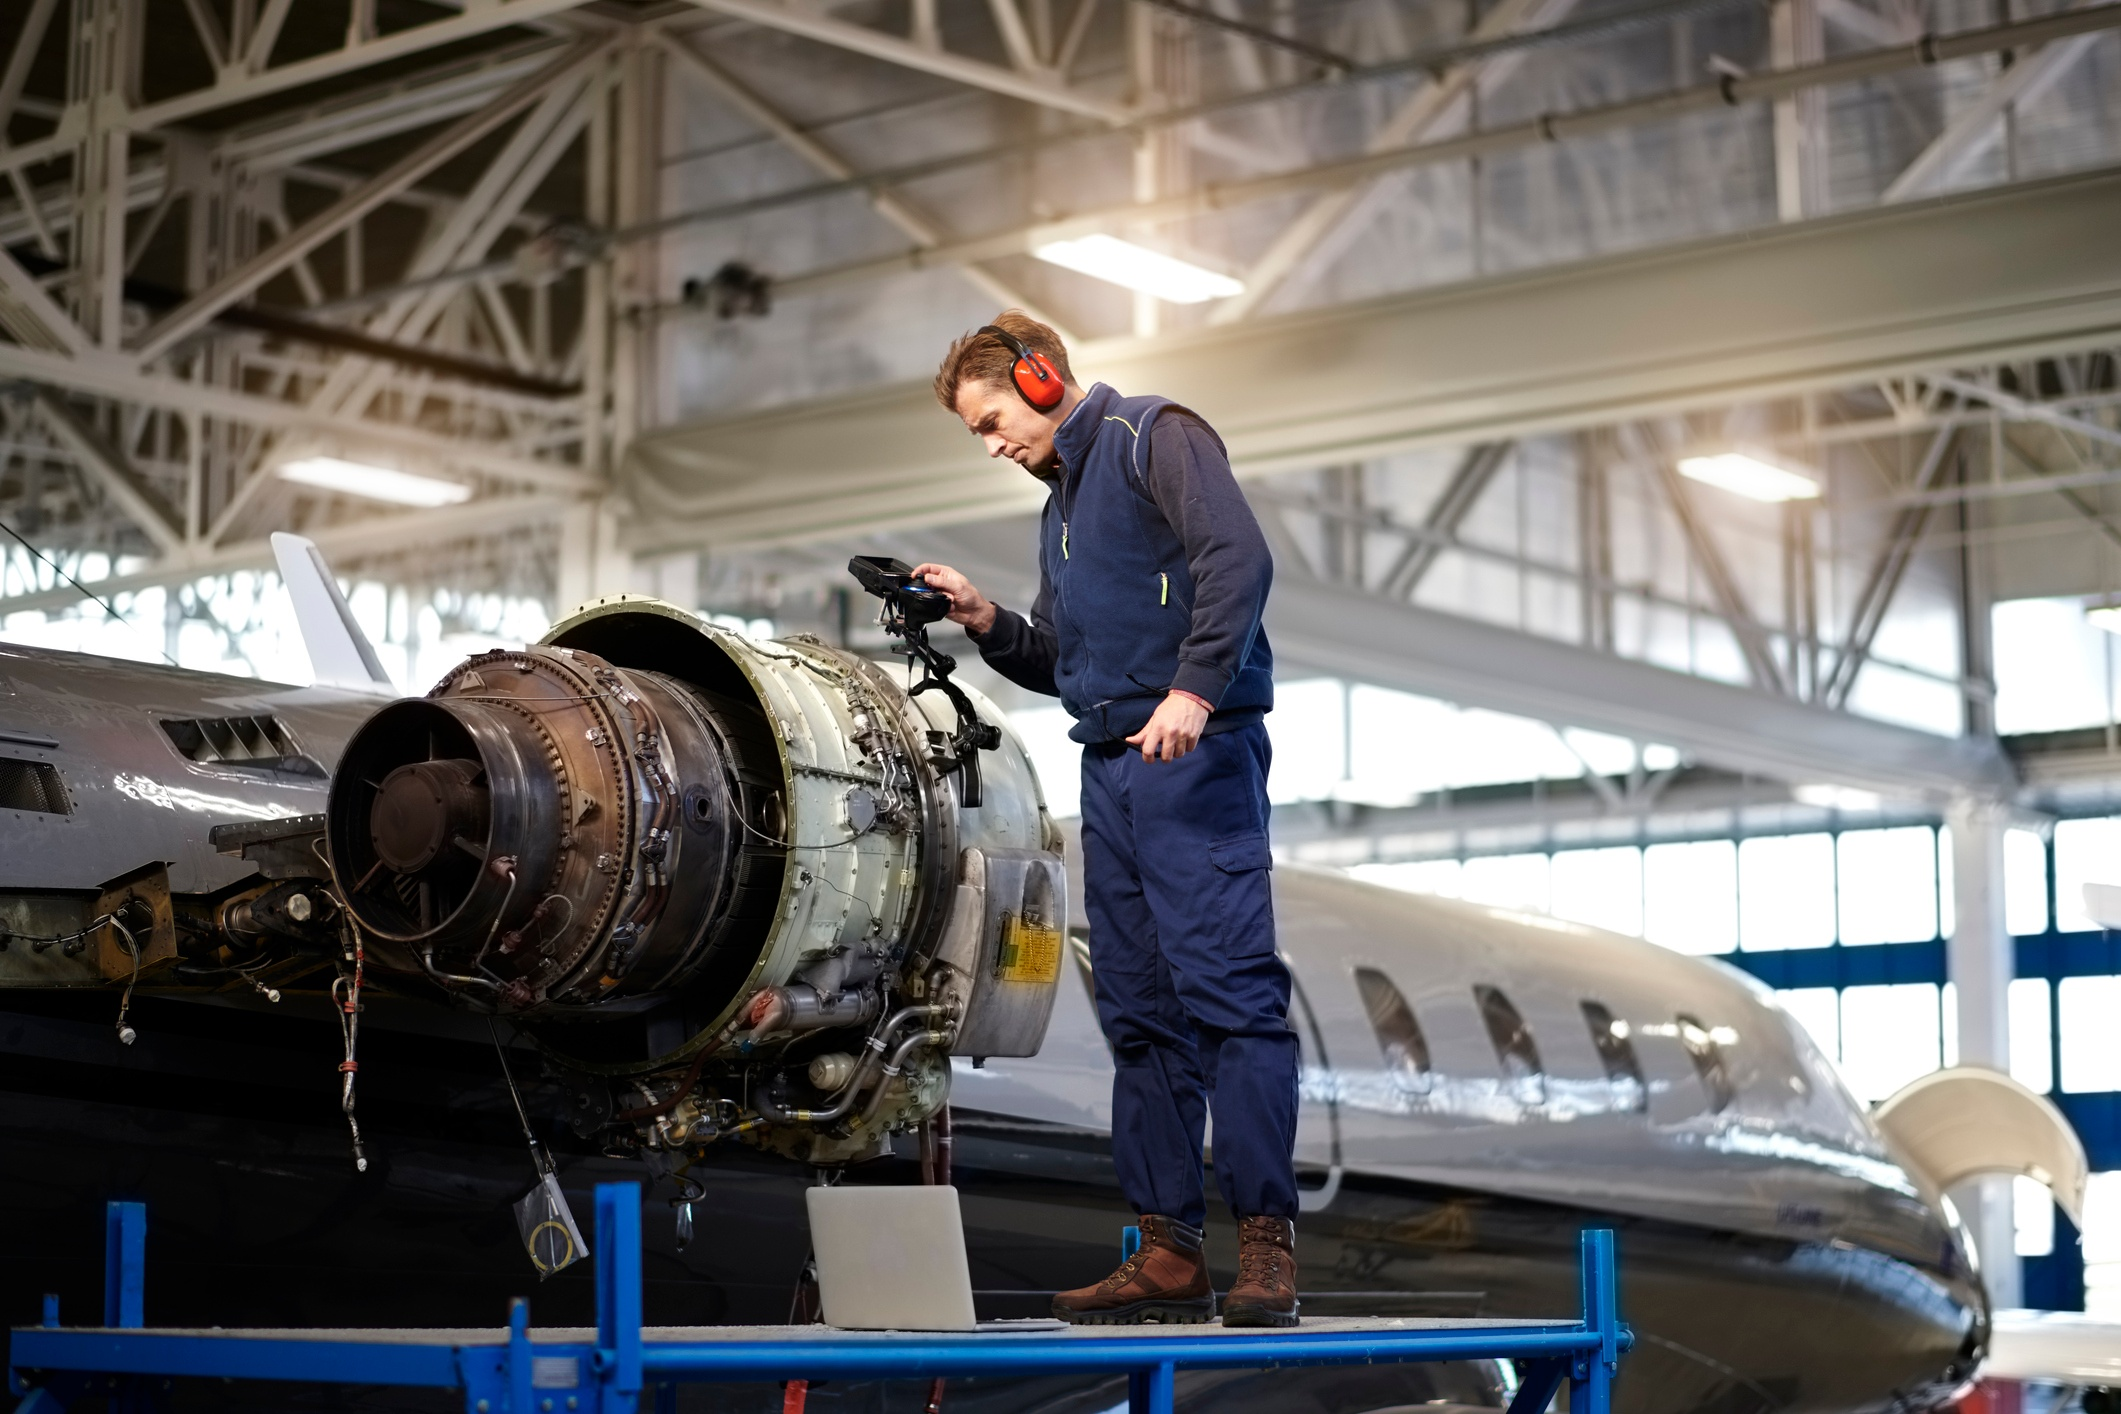 Aerospace industry in Guanajuato is recovering